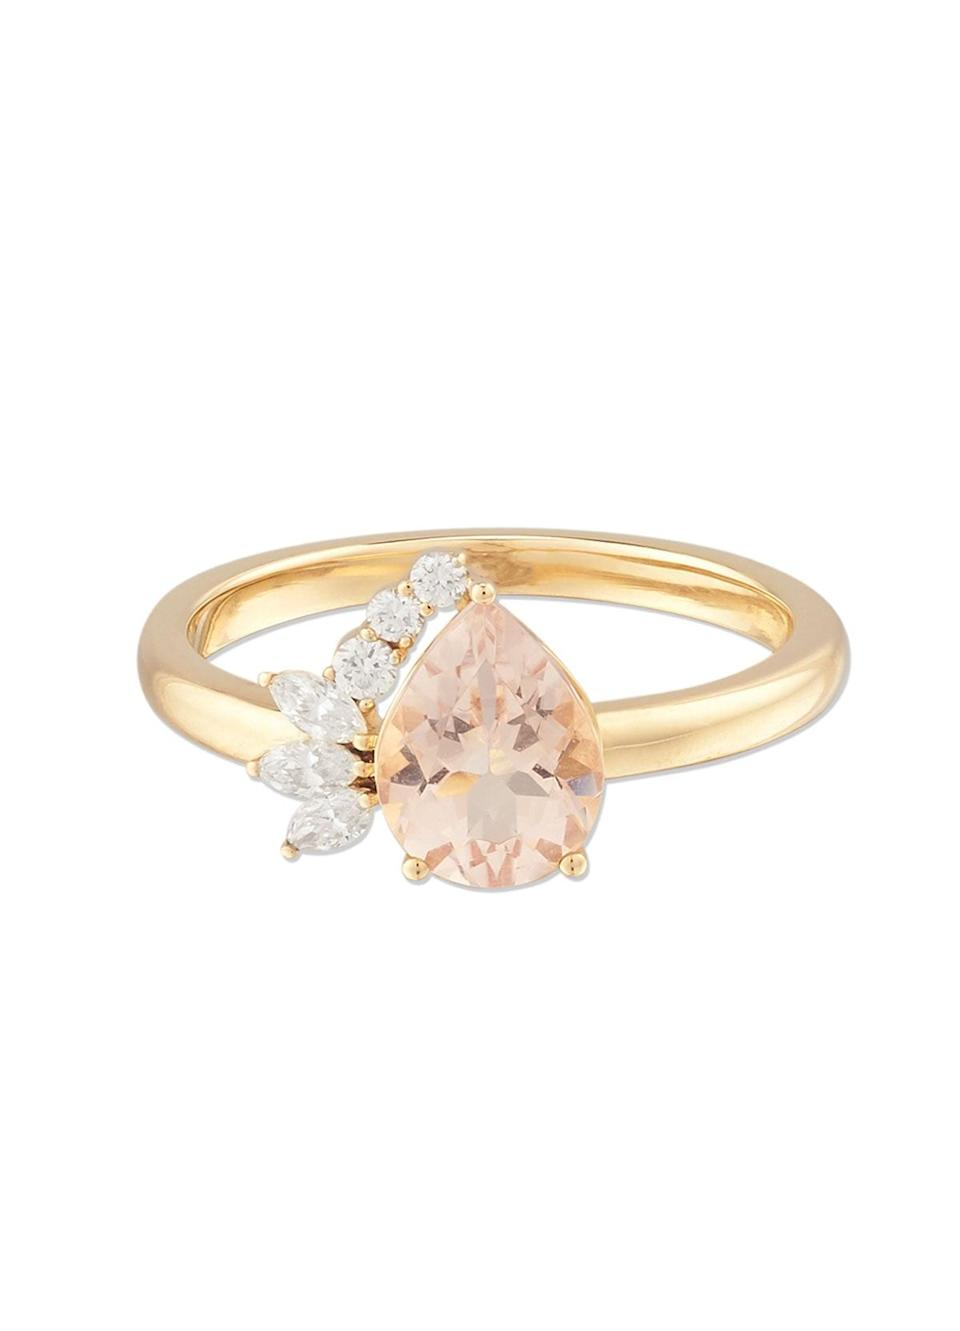 """You probably know Mejuri for its thin gold hoops and stackable chains, but the brand also sells a number of engagement-friendly styles, like this pear-cut ring. The six diamonds on the side are a mix of marquise and round cuts, and the center stone is an ethically-sourced and certified peach morganite. $650, Mejuri. <a href=""""https://mejuri.com/shop/products/pear-cut-ring-peach"""" rel=""""nofollow noopener"""" target=""""_blank"""" data-ylk=""""slk:Get it now!"""" class=""""link rapid-noclick-resp"""">Get it now!</a>"""